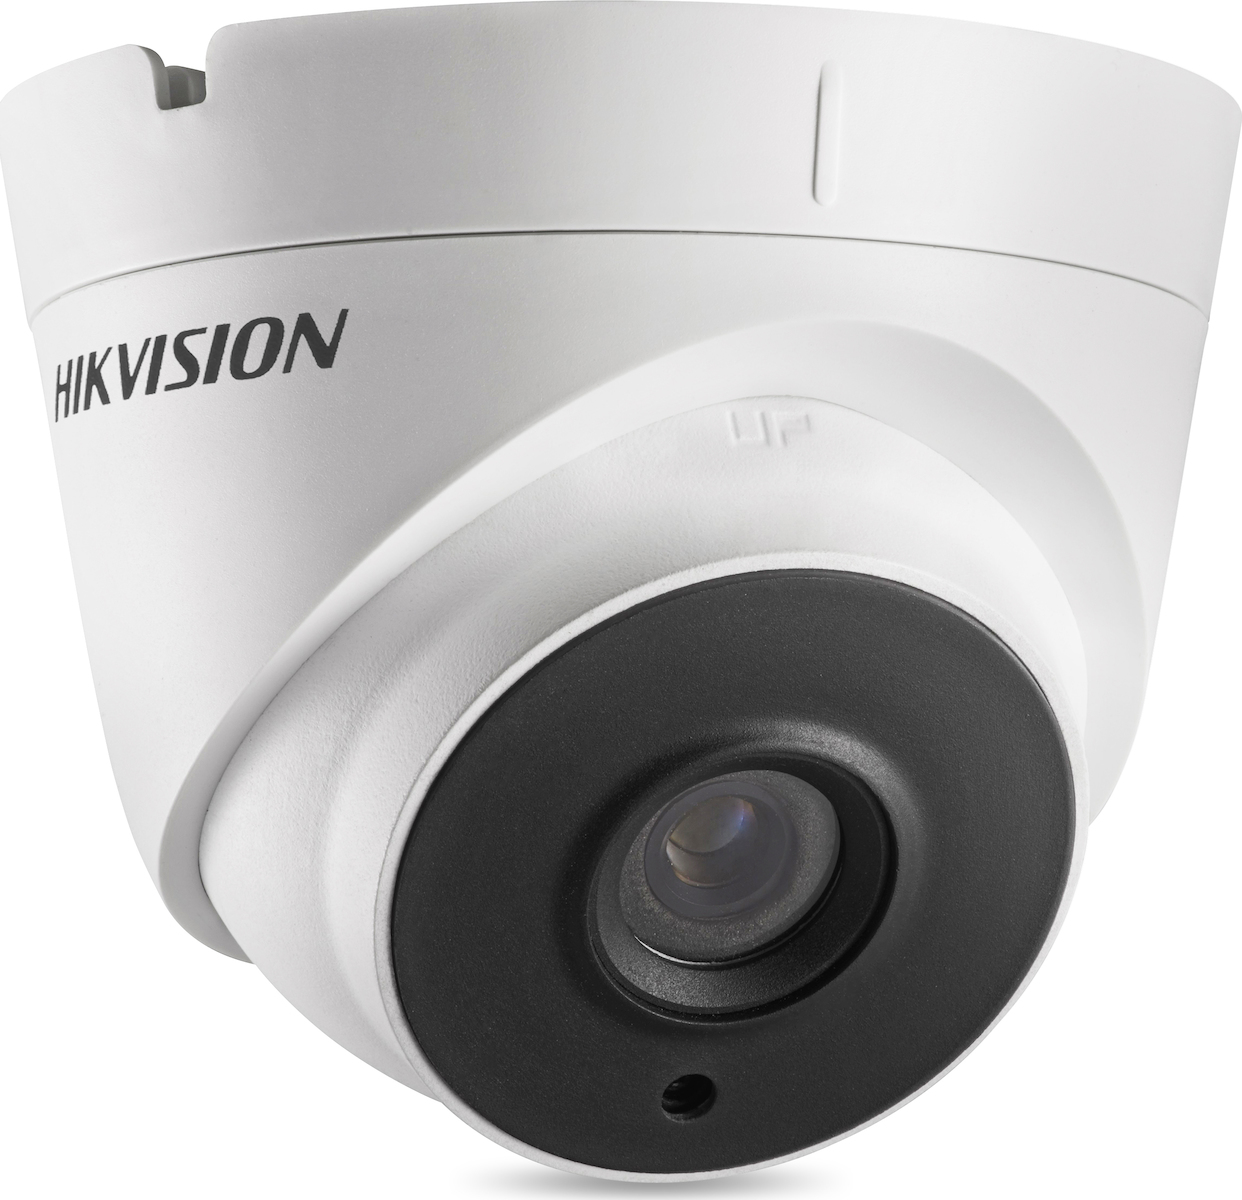 HIKVISION - DS-2CE56D8T-IT3F